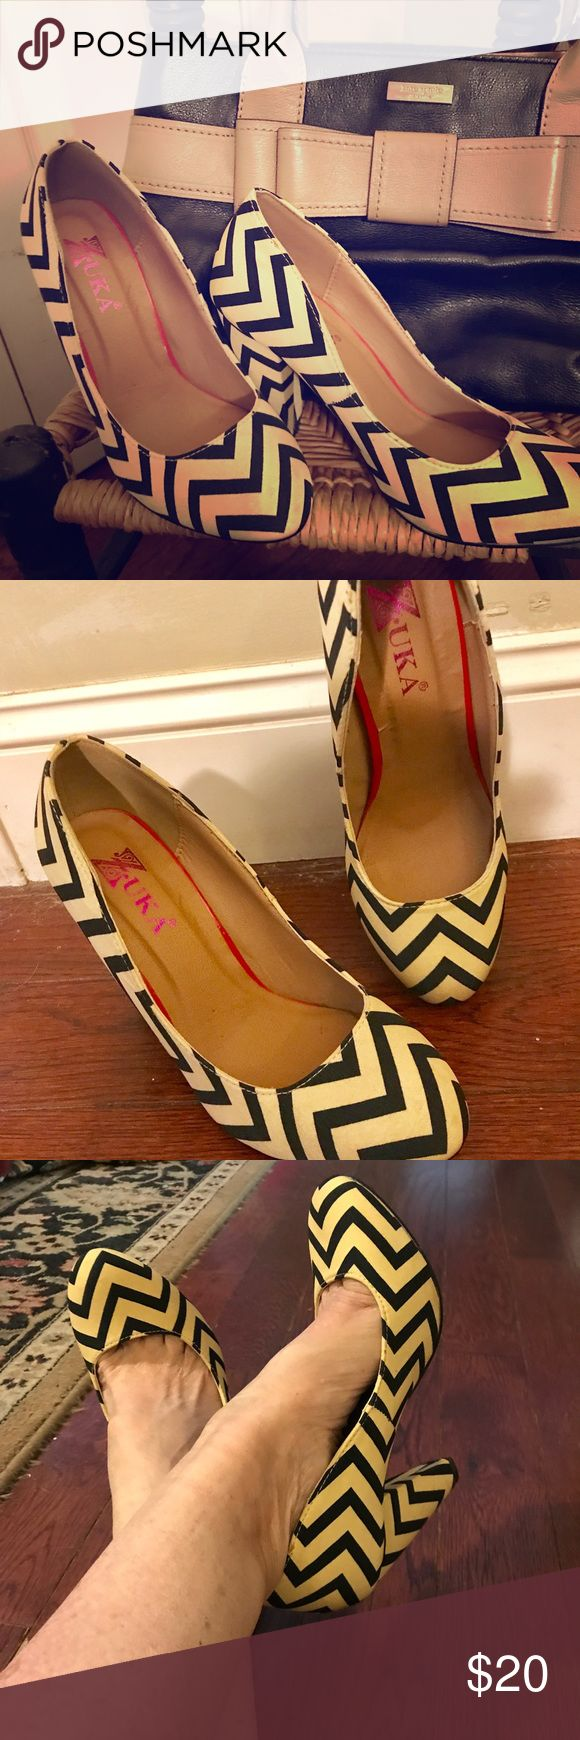 Darling Black & Tan Chevron Shoes So cute and spunky. Look great with black pants, dress or with jeans. Only worn a few times. Look like new! Shoes Heels